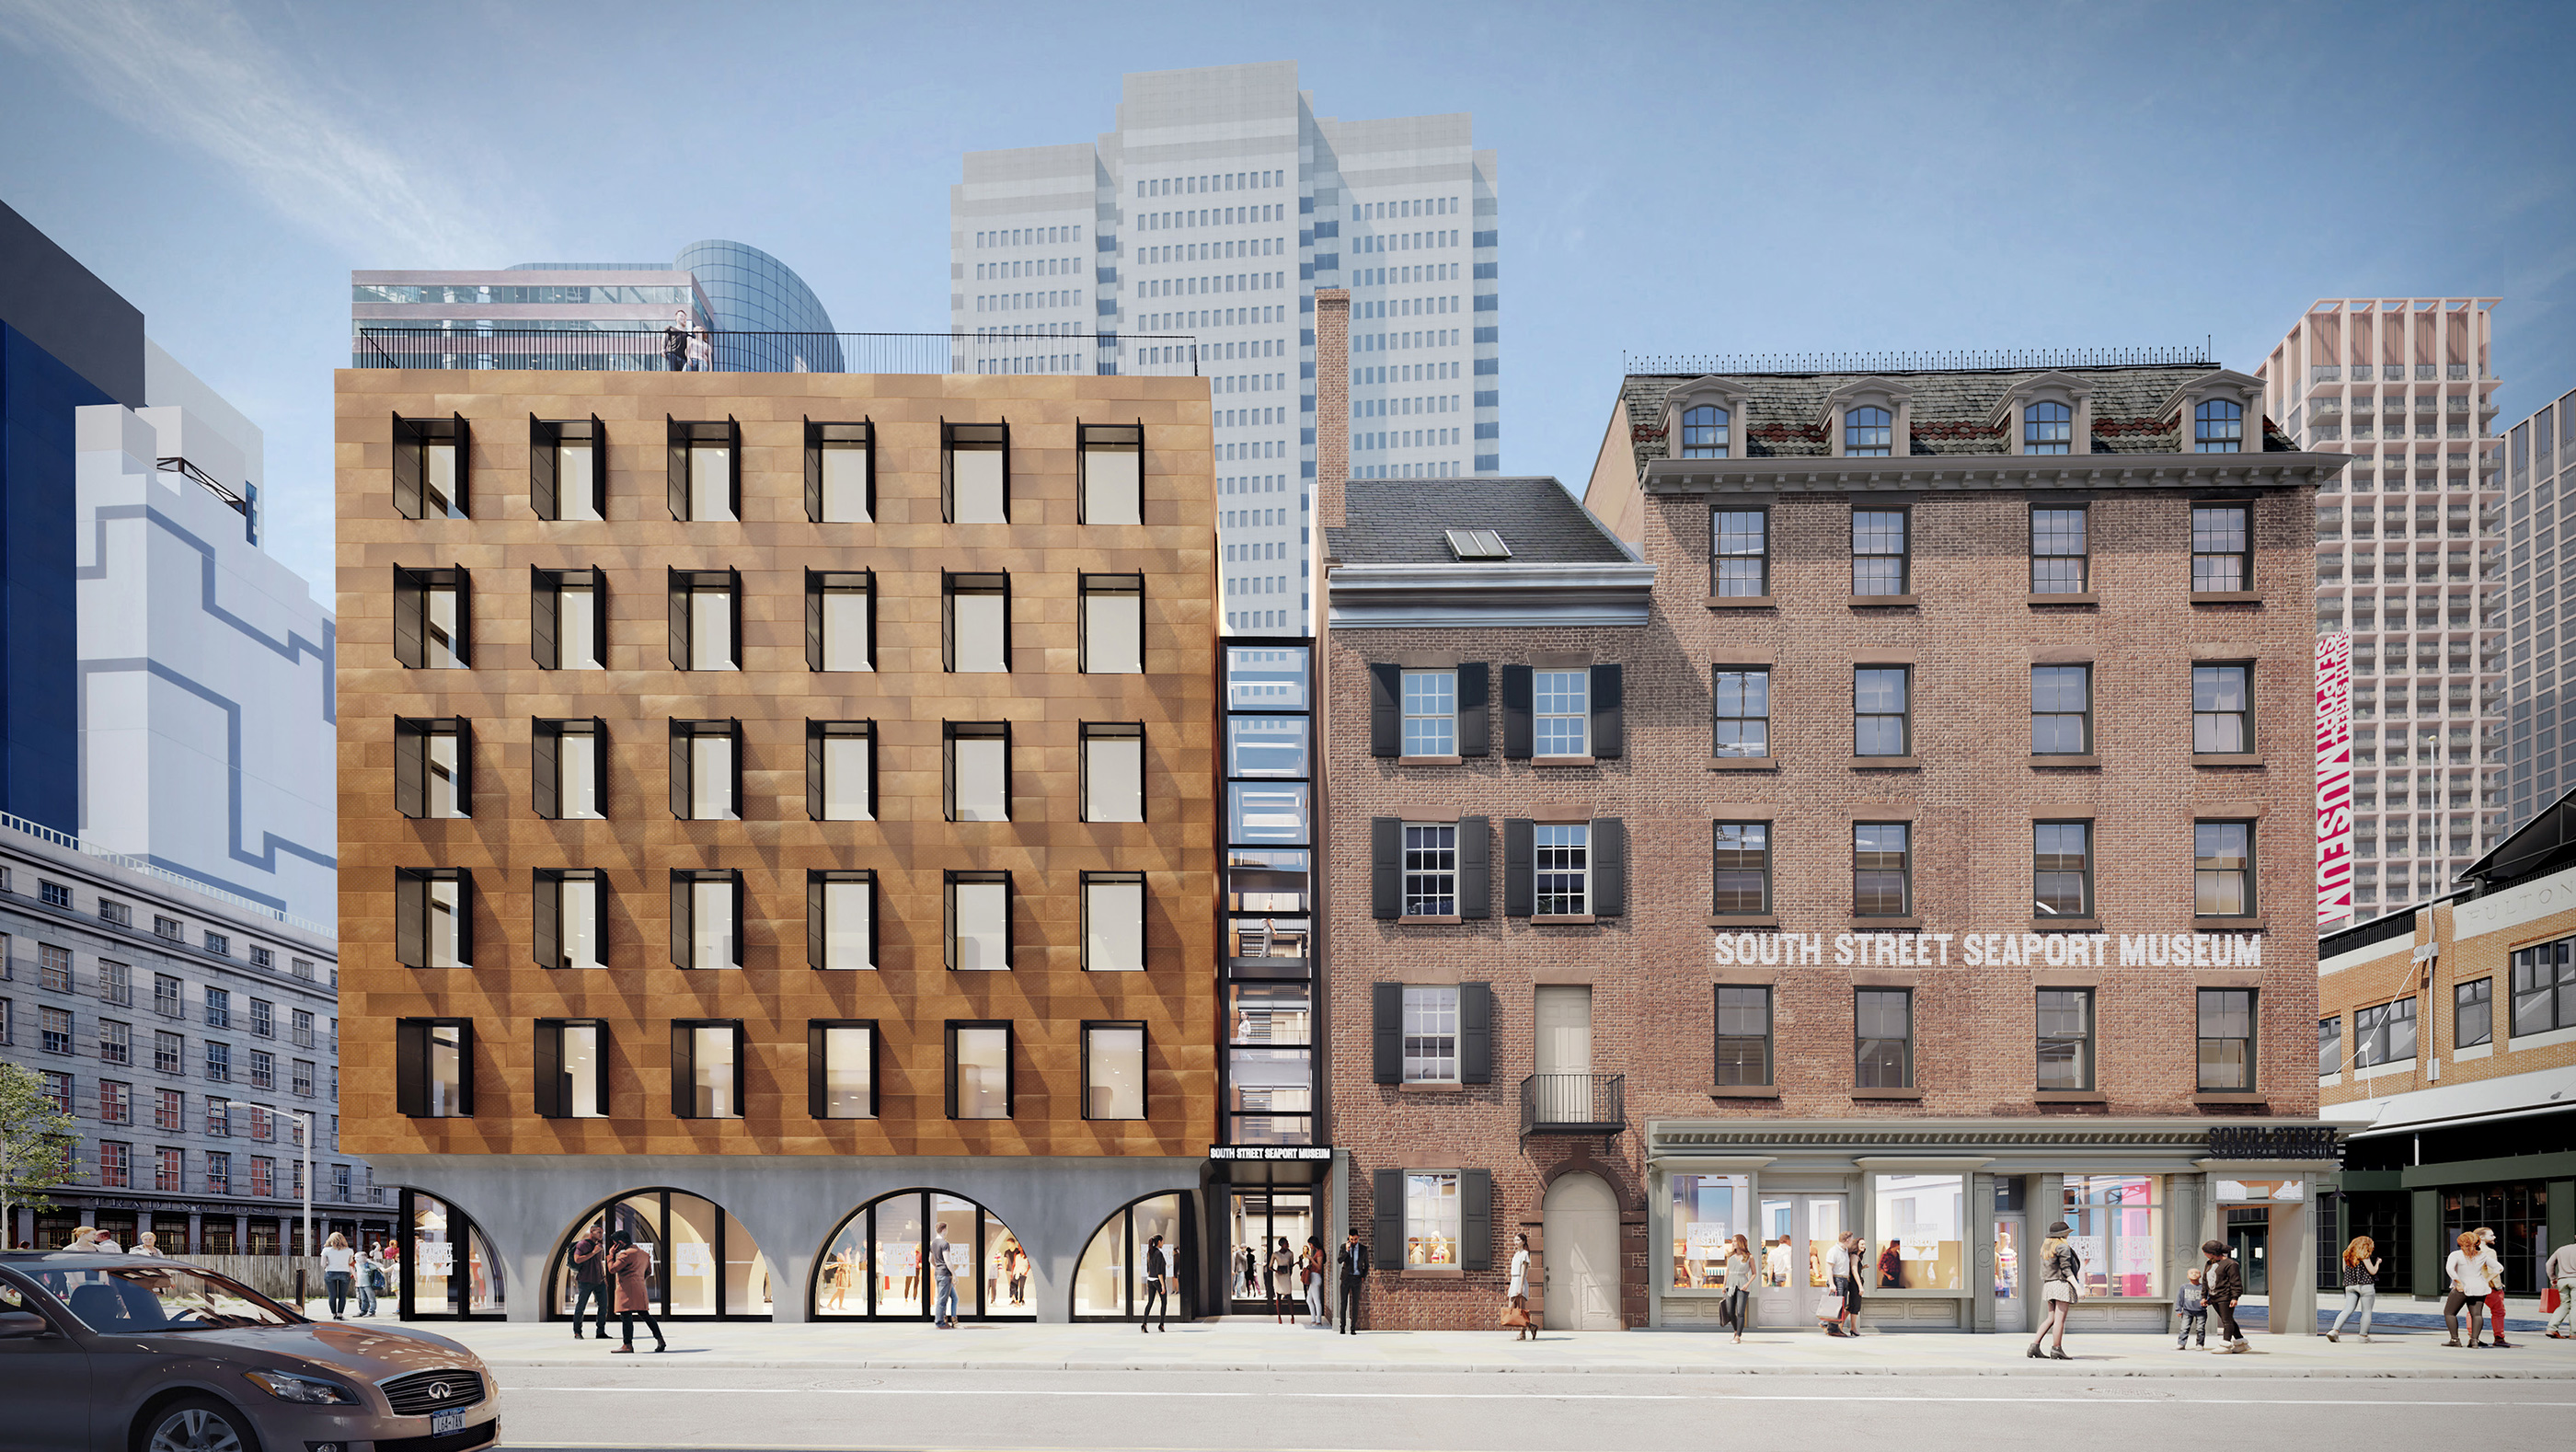 Rendering of a squat historic building in the south street seaport next to a more contemporary museum